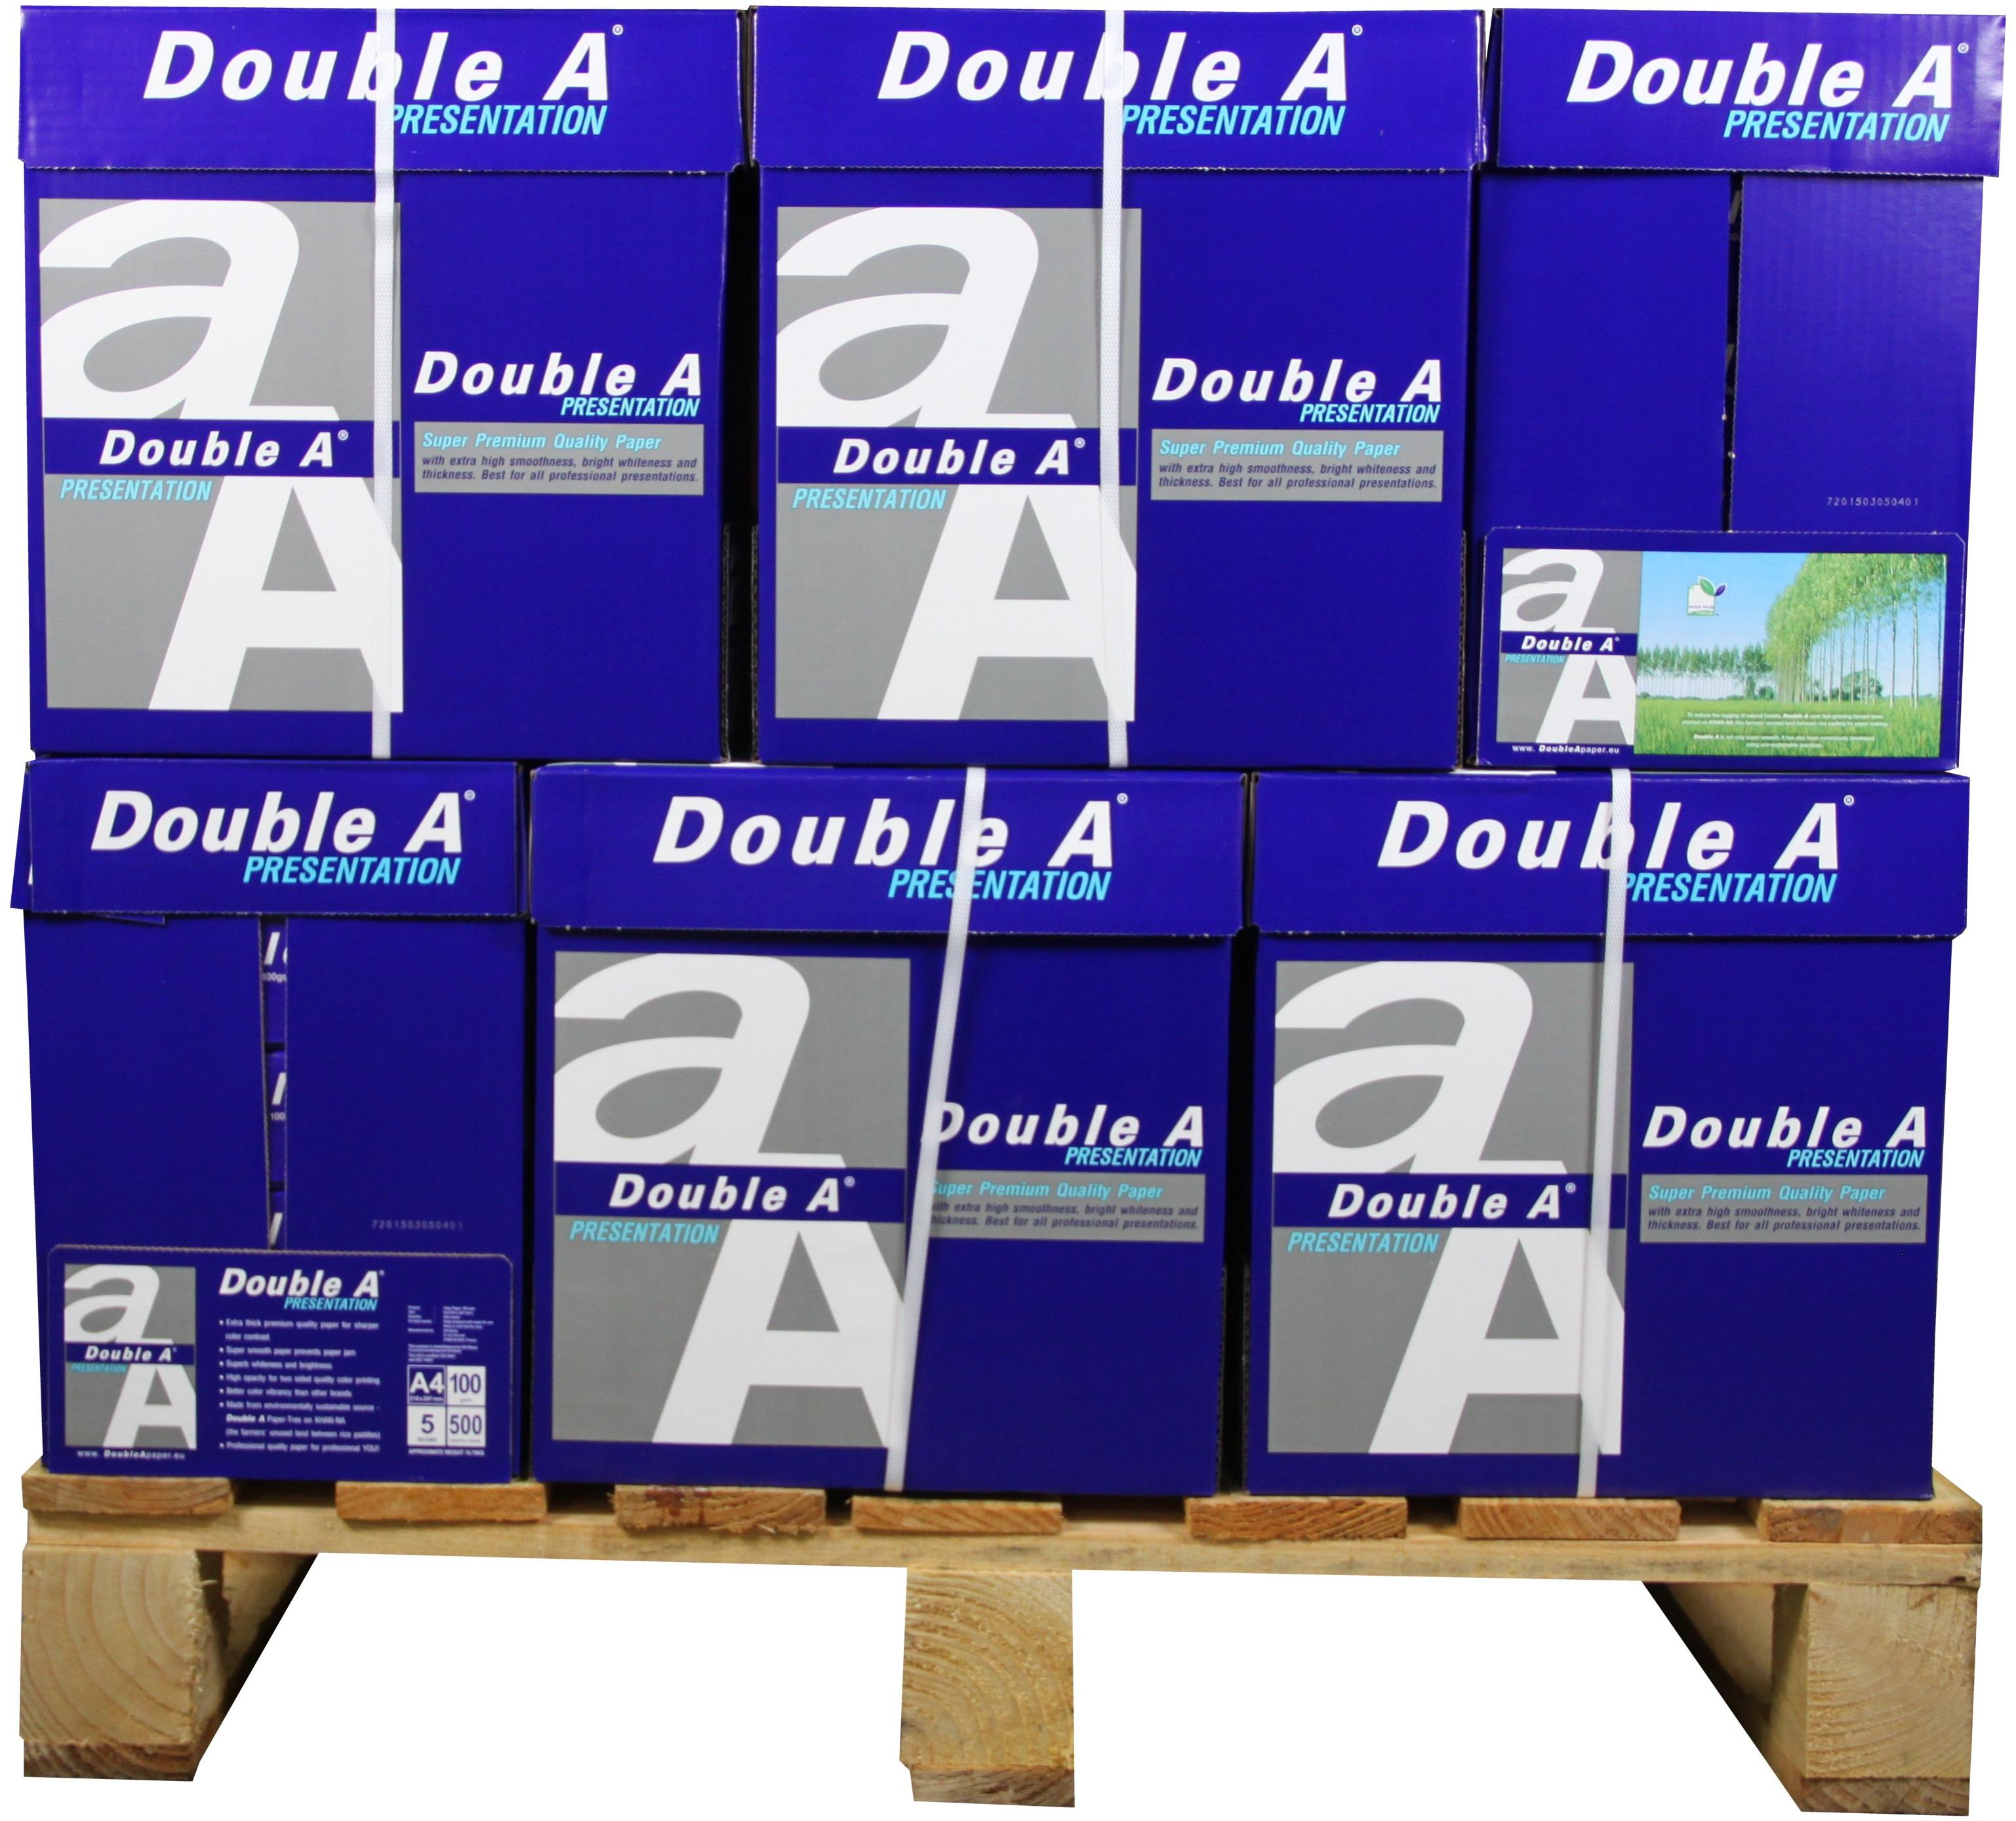 Double A Presentation A4 Papier 80 pakken (100 grams) wit